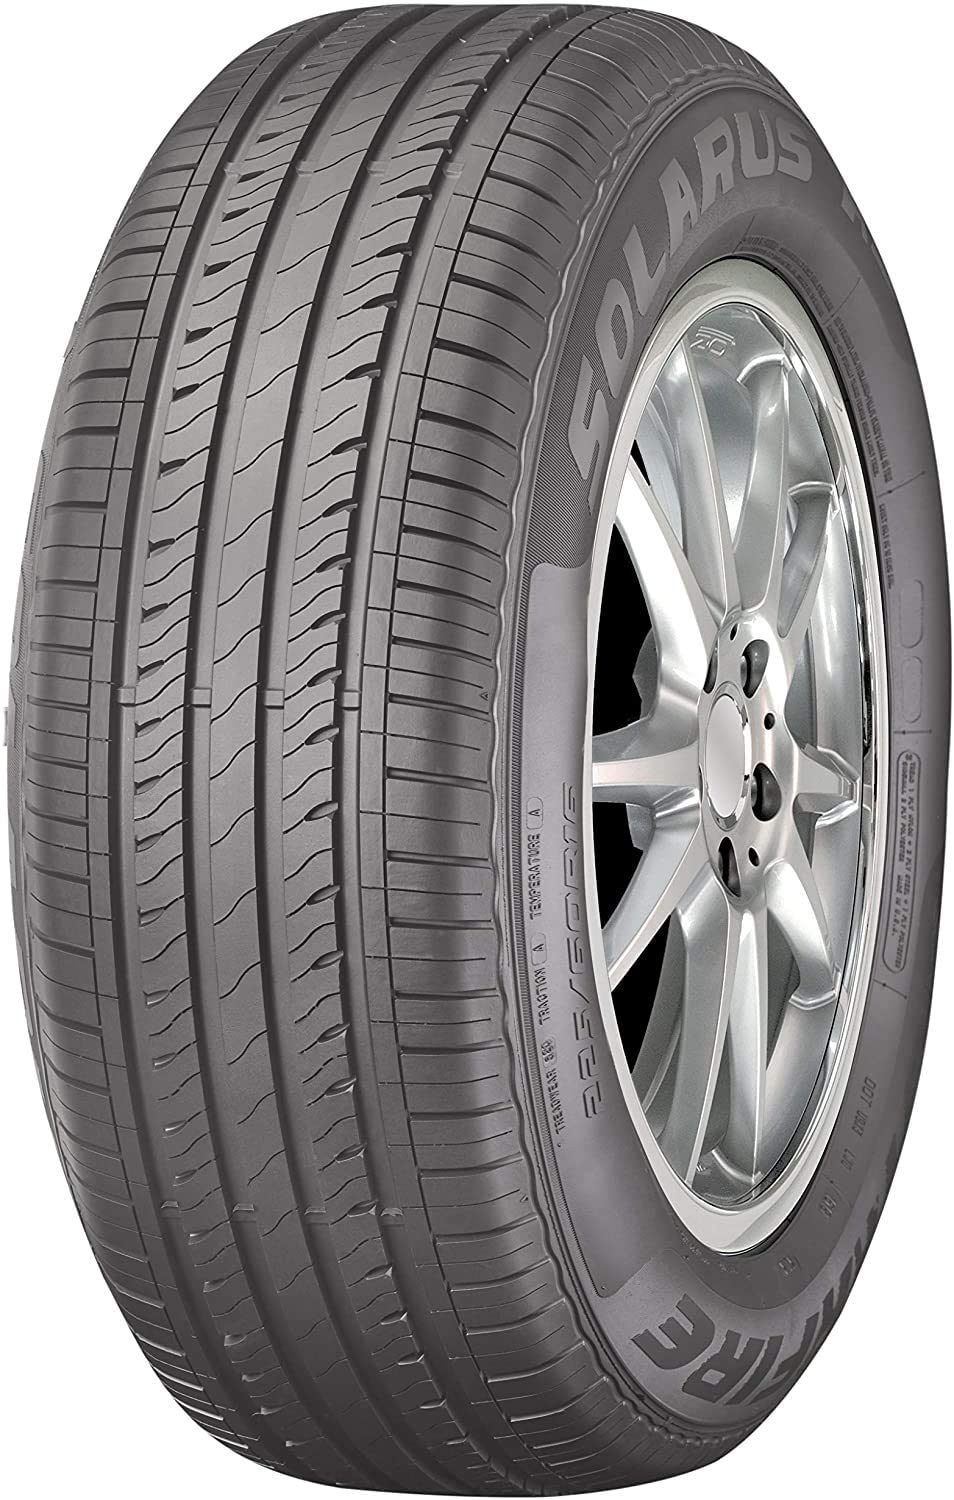 Starfire Solarus AS P195 65R15 Sales of SALE items from new works Season Radial Tire All 91H Las Vegas Mall